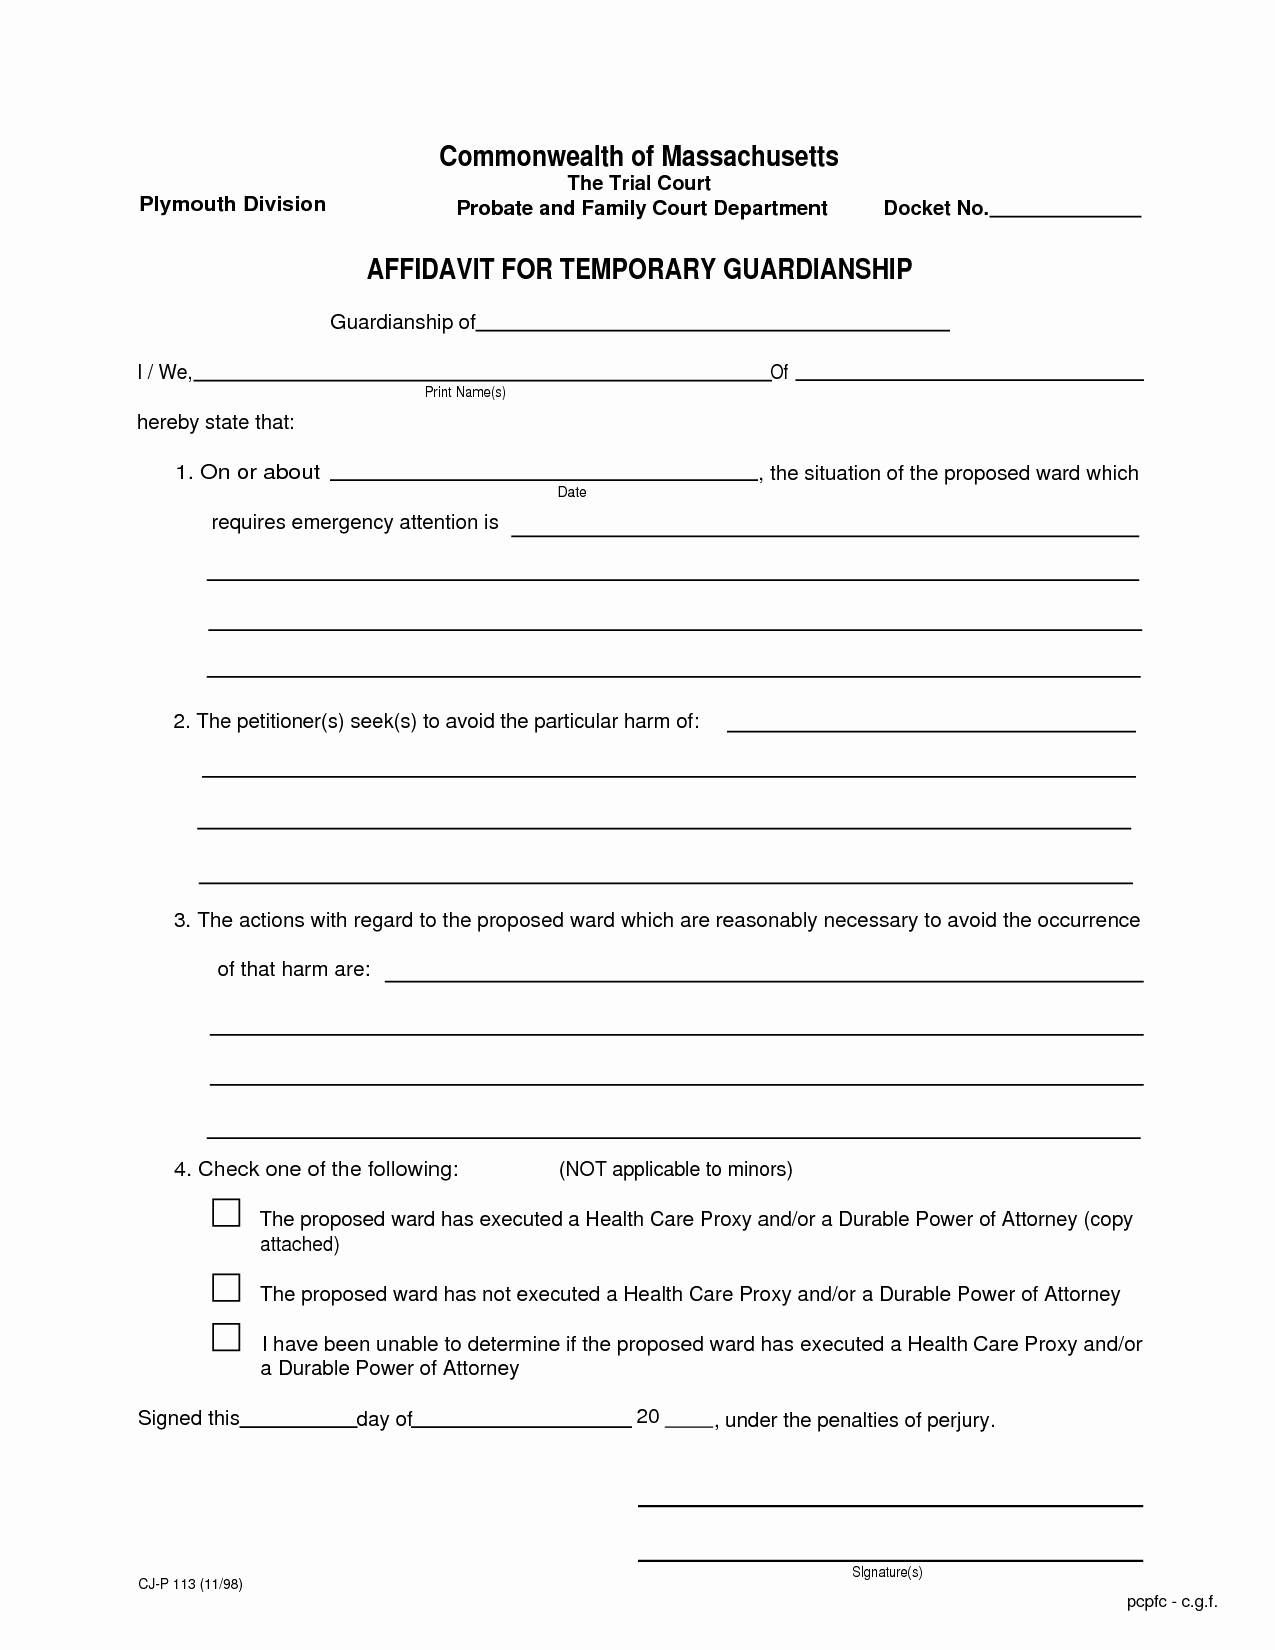 Free Printable Guardianship forms Lovely Temporary Guardianship Agreement form